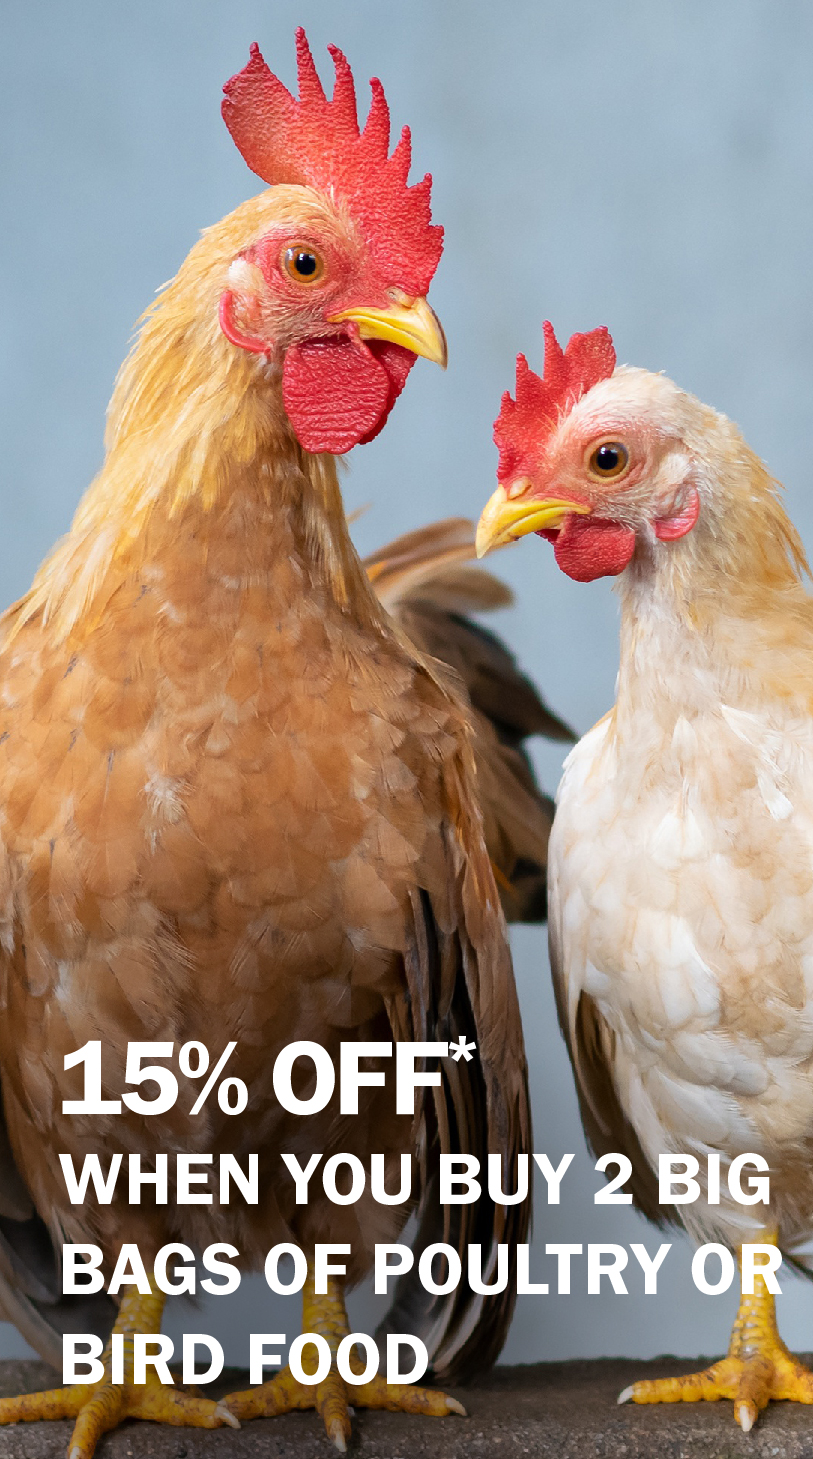 15% off when you buy 2 big bags of poultry or bird food